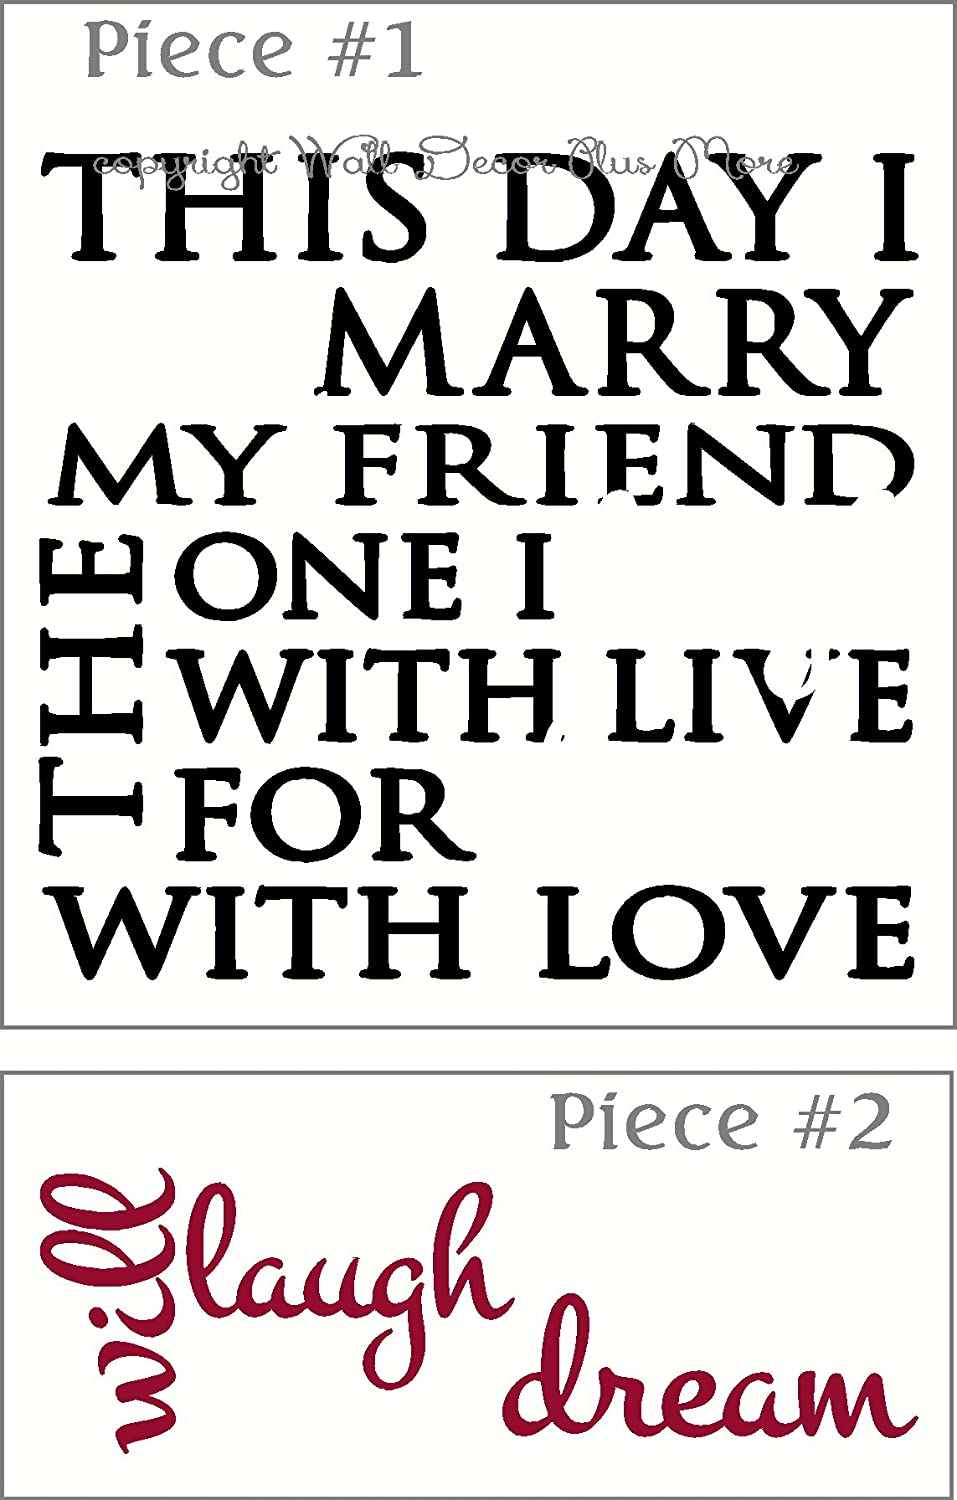 23 x 23 Wall Decor Plus More WDPM3439 This Day I Will Marry Wedding Vinyl Wall Decal Love Quote Black//Red